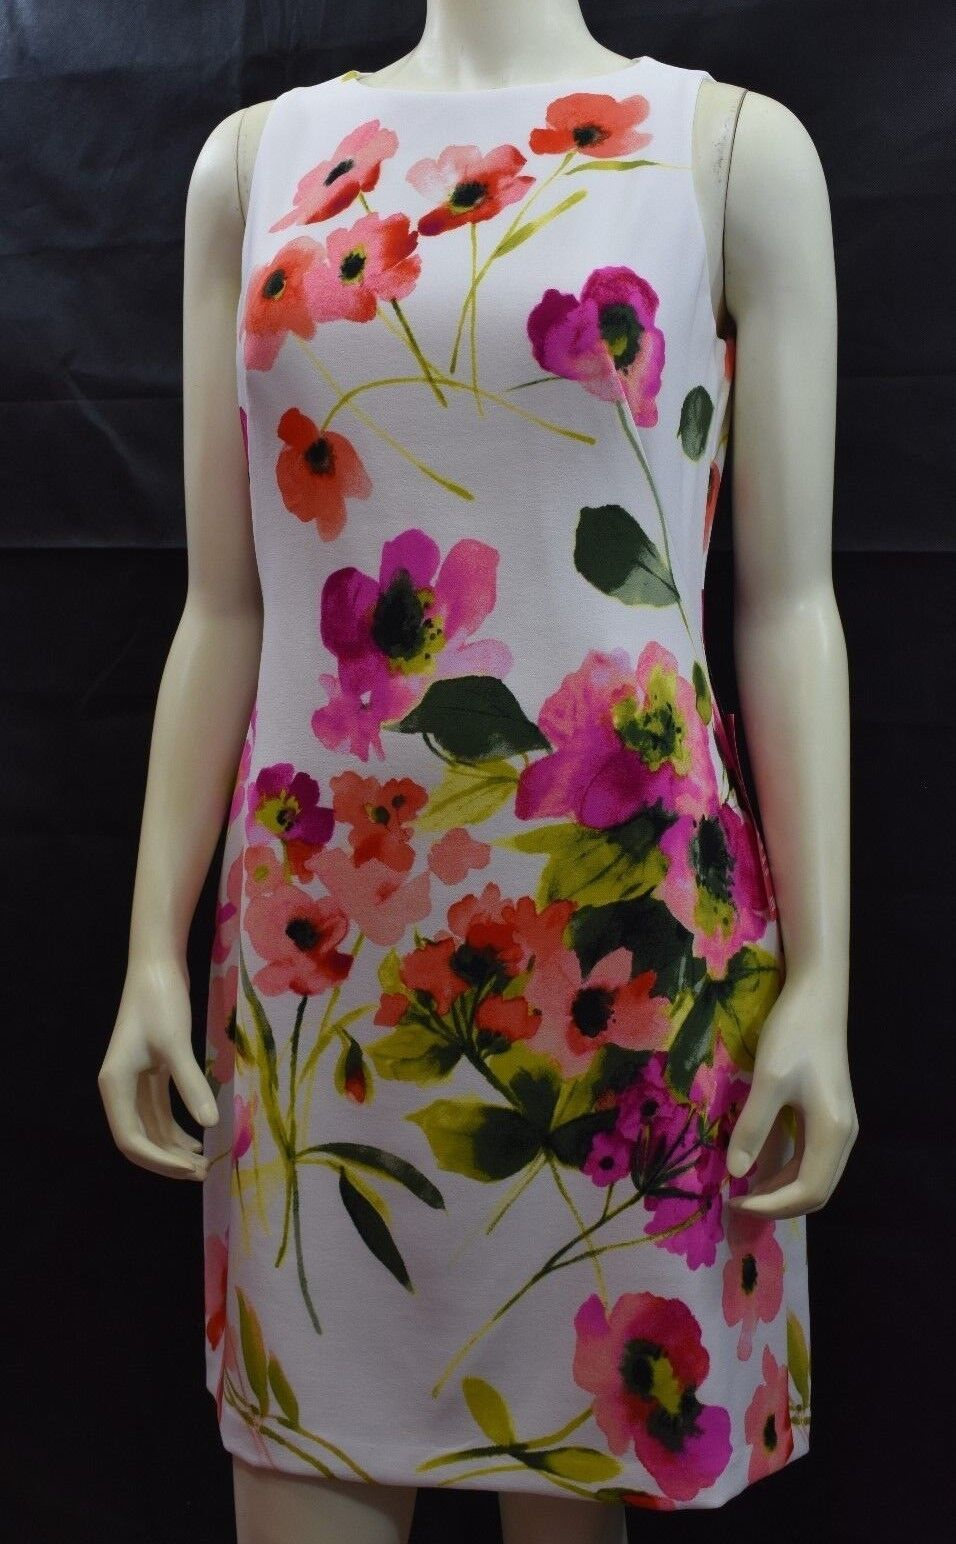 RALPH LAUREN FLORAL PRINT SHEATH DRESS SZ 12 NEW WITH TAG